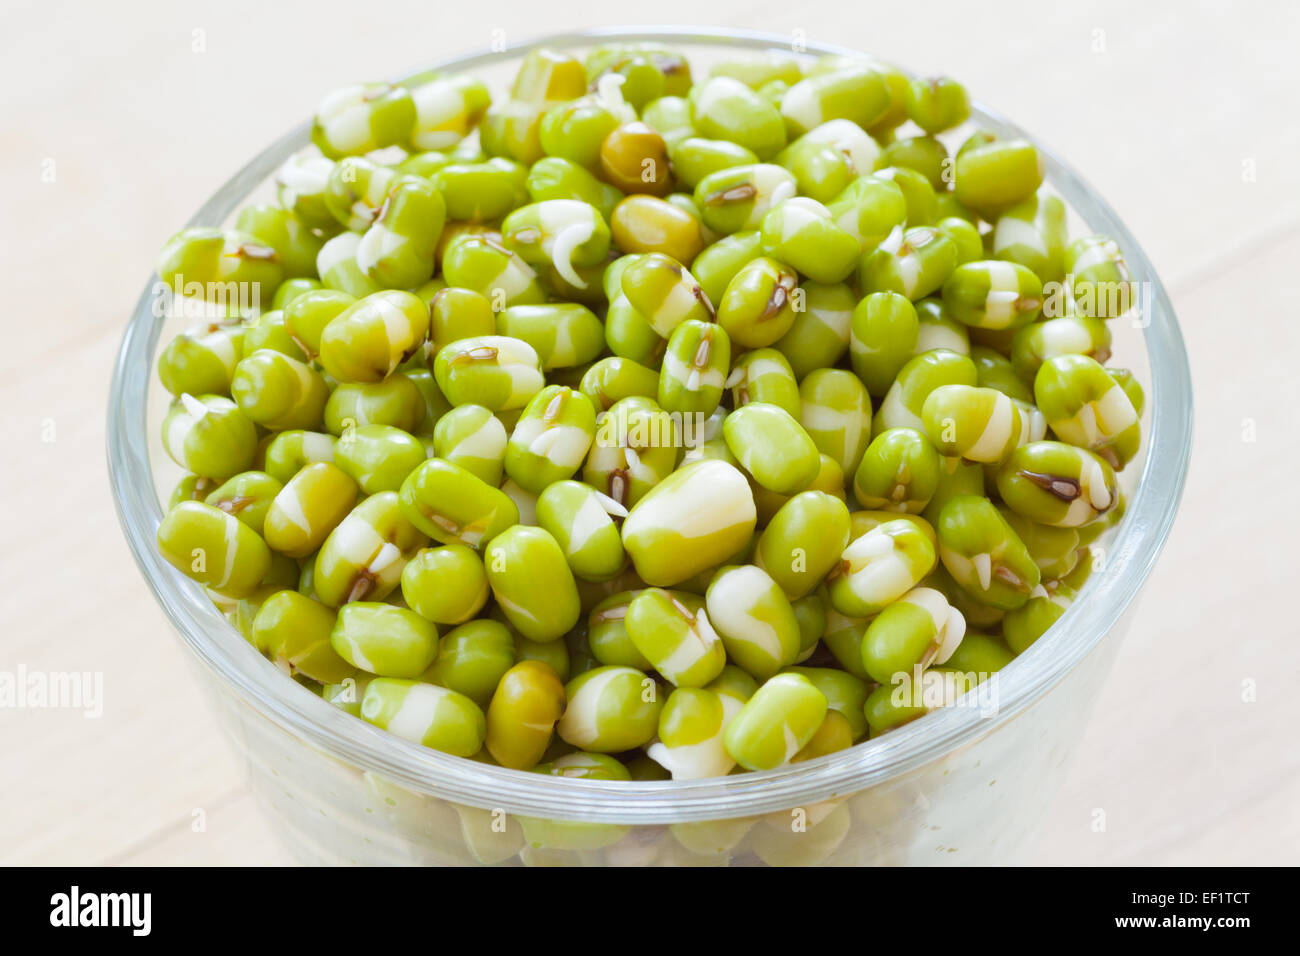 green mung bean sprouts in bowl - Stock Image